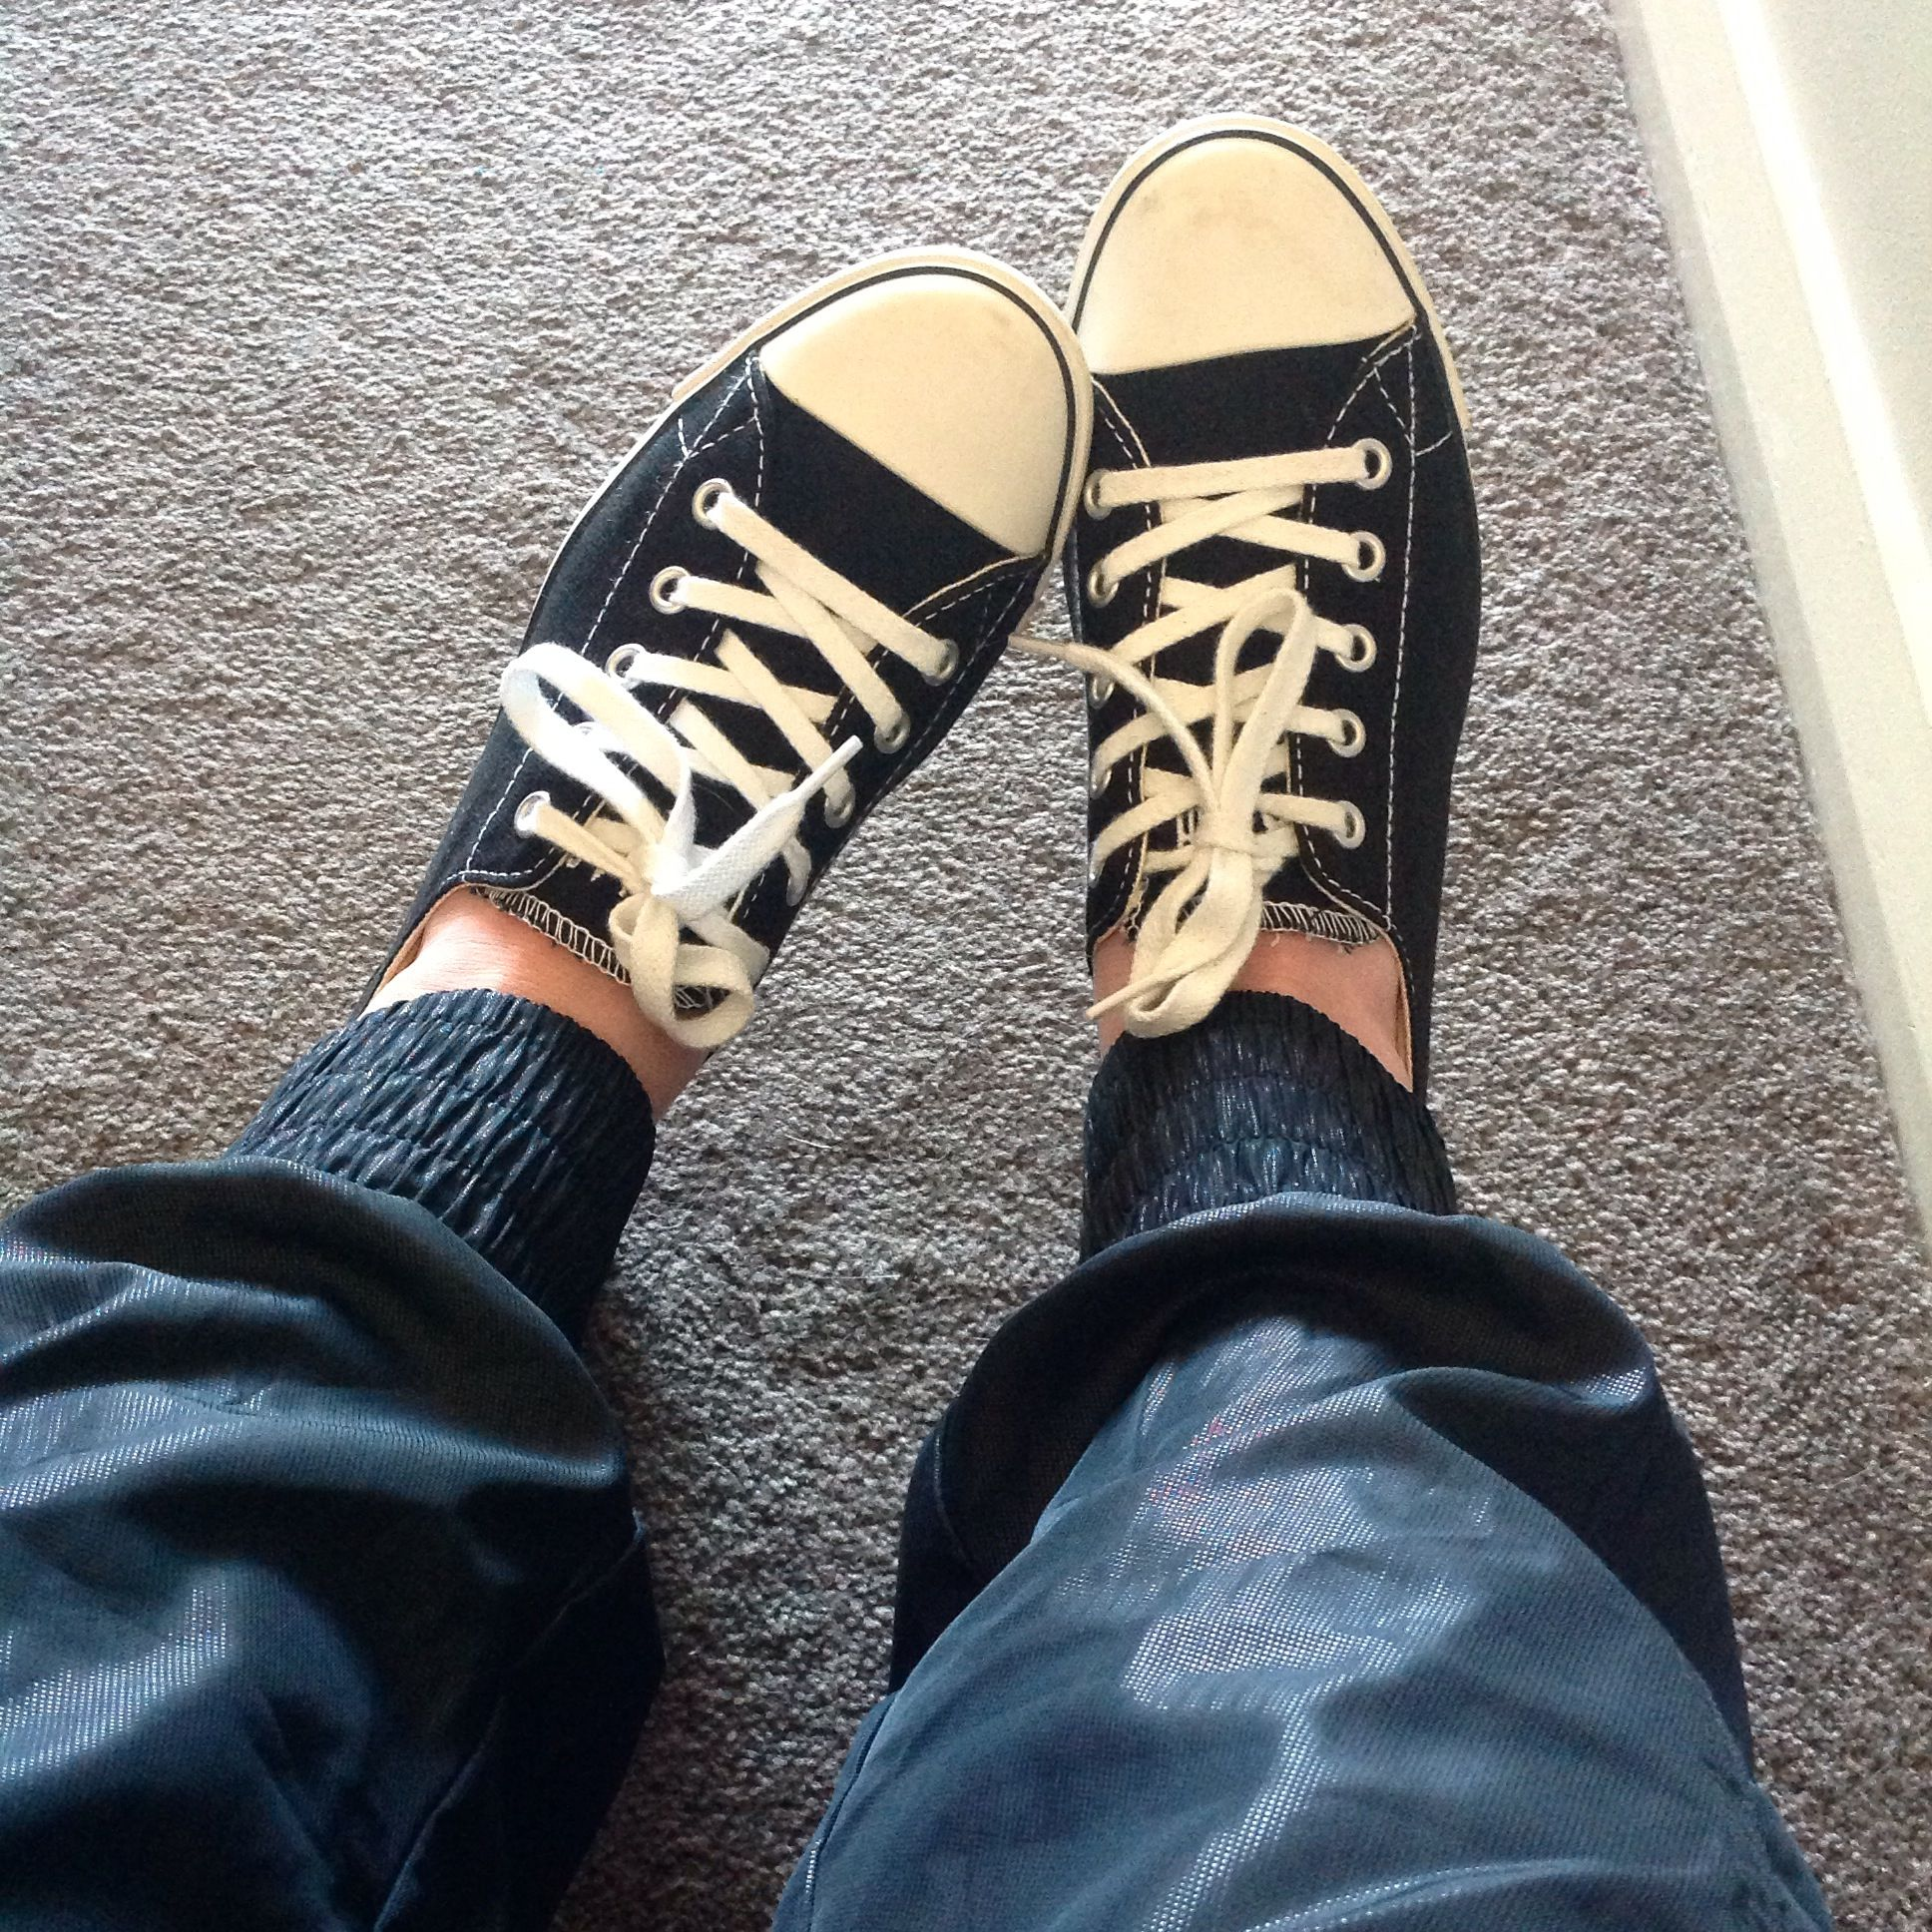 Wearing my AFOs with converse flats and Lorna Jane pants. These pants have  zippers at